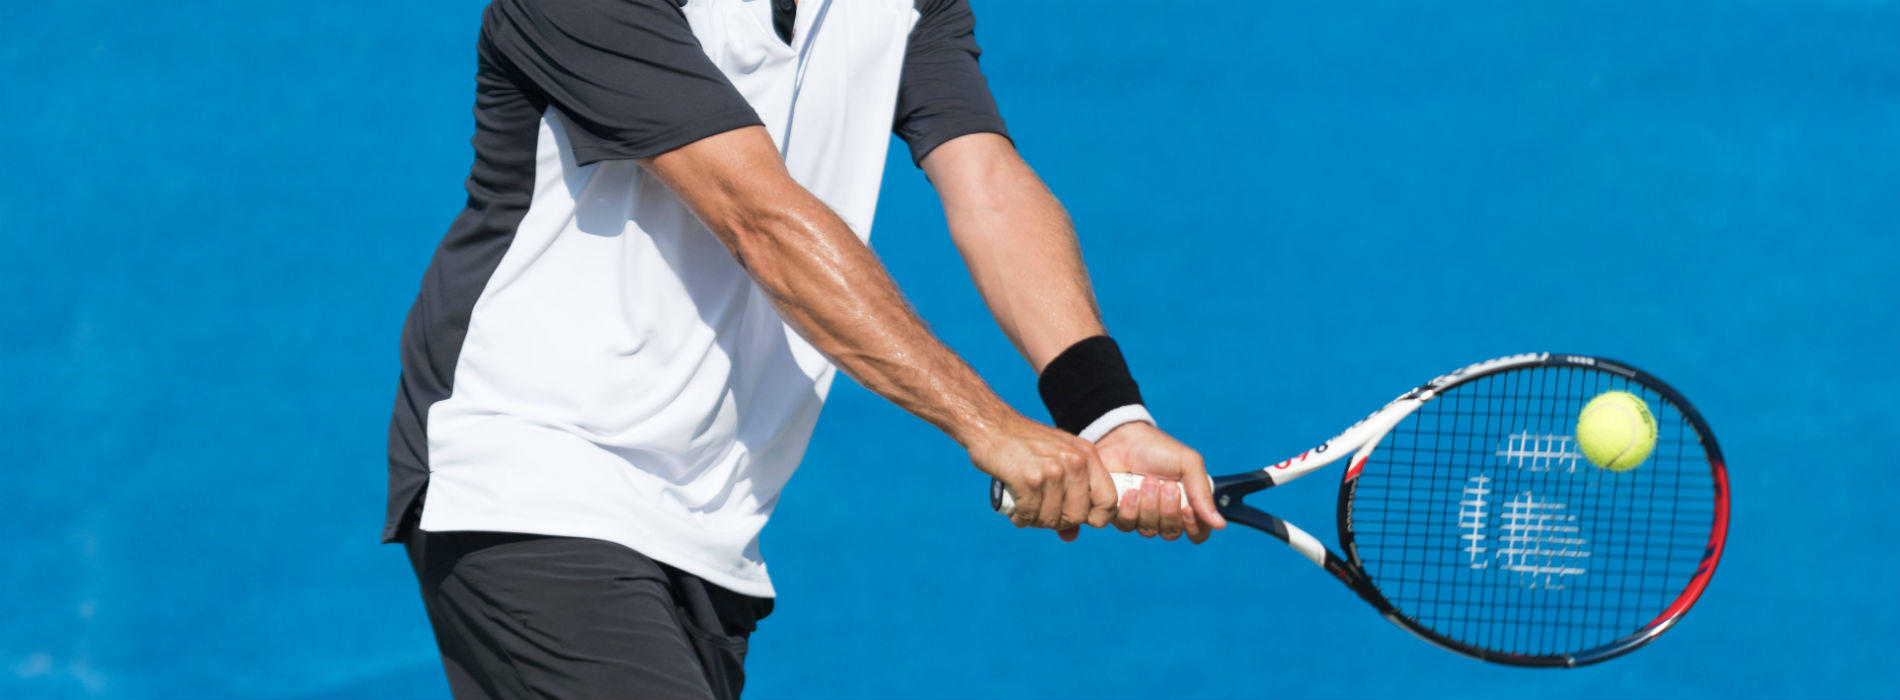 How to Choose Your Racket Sports Sportswear for Men